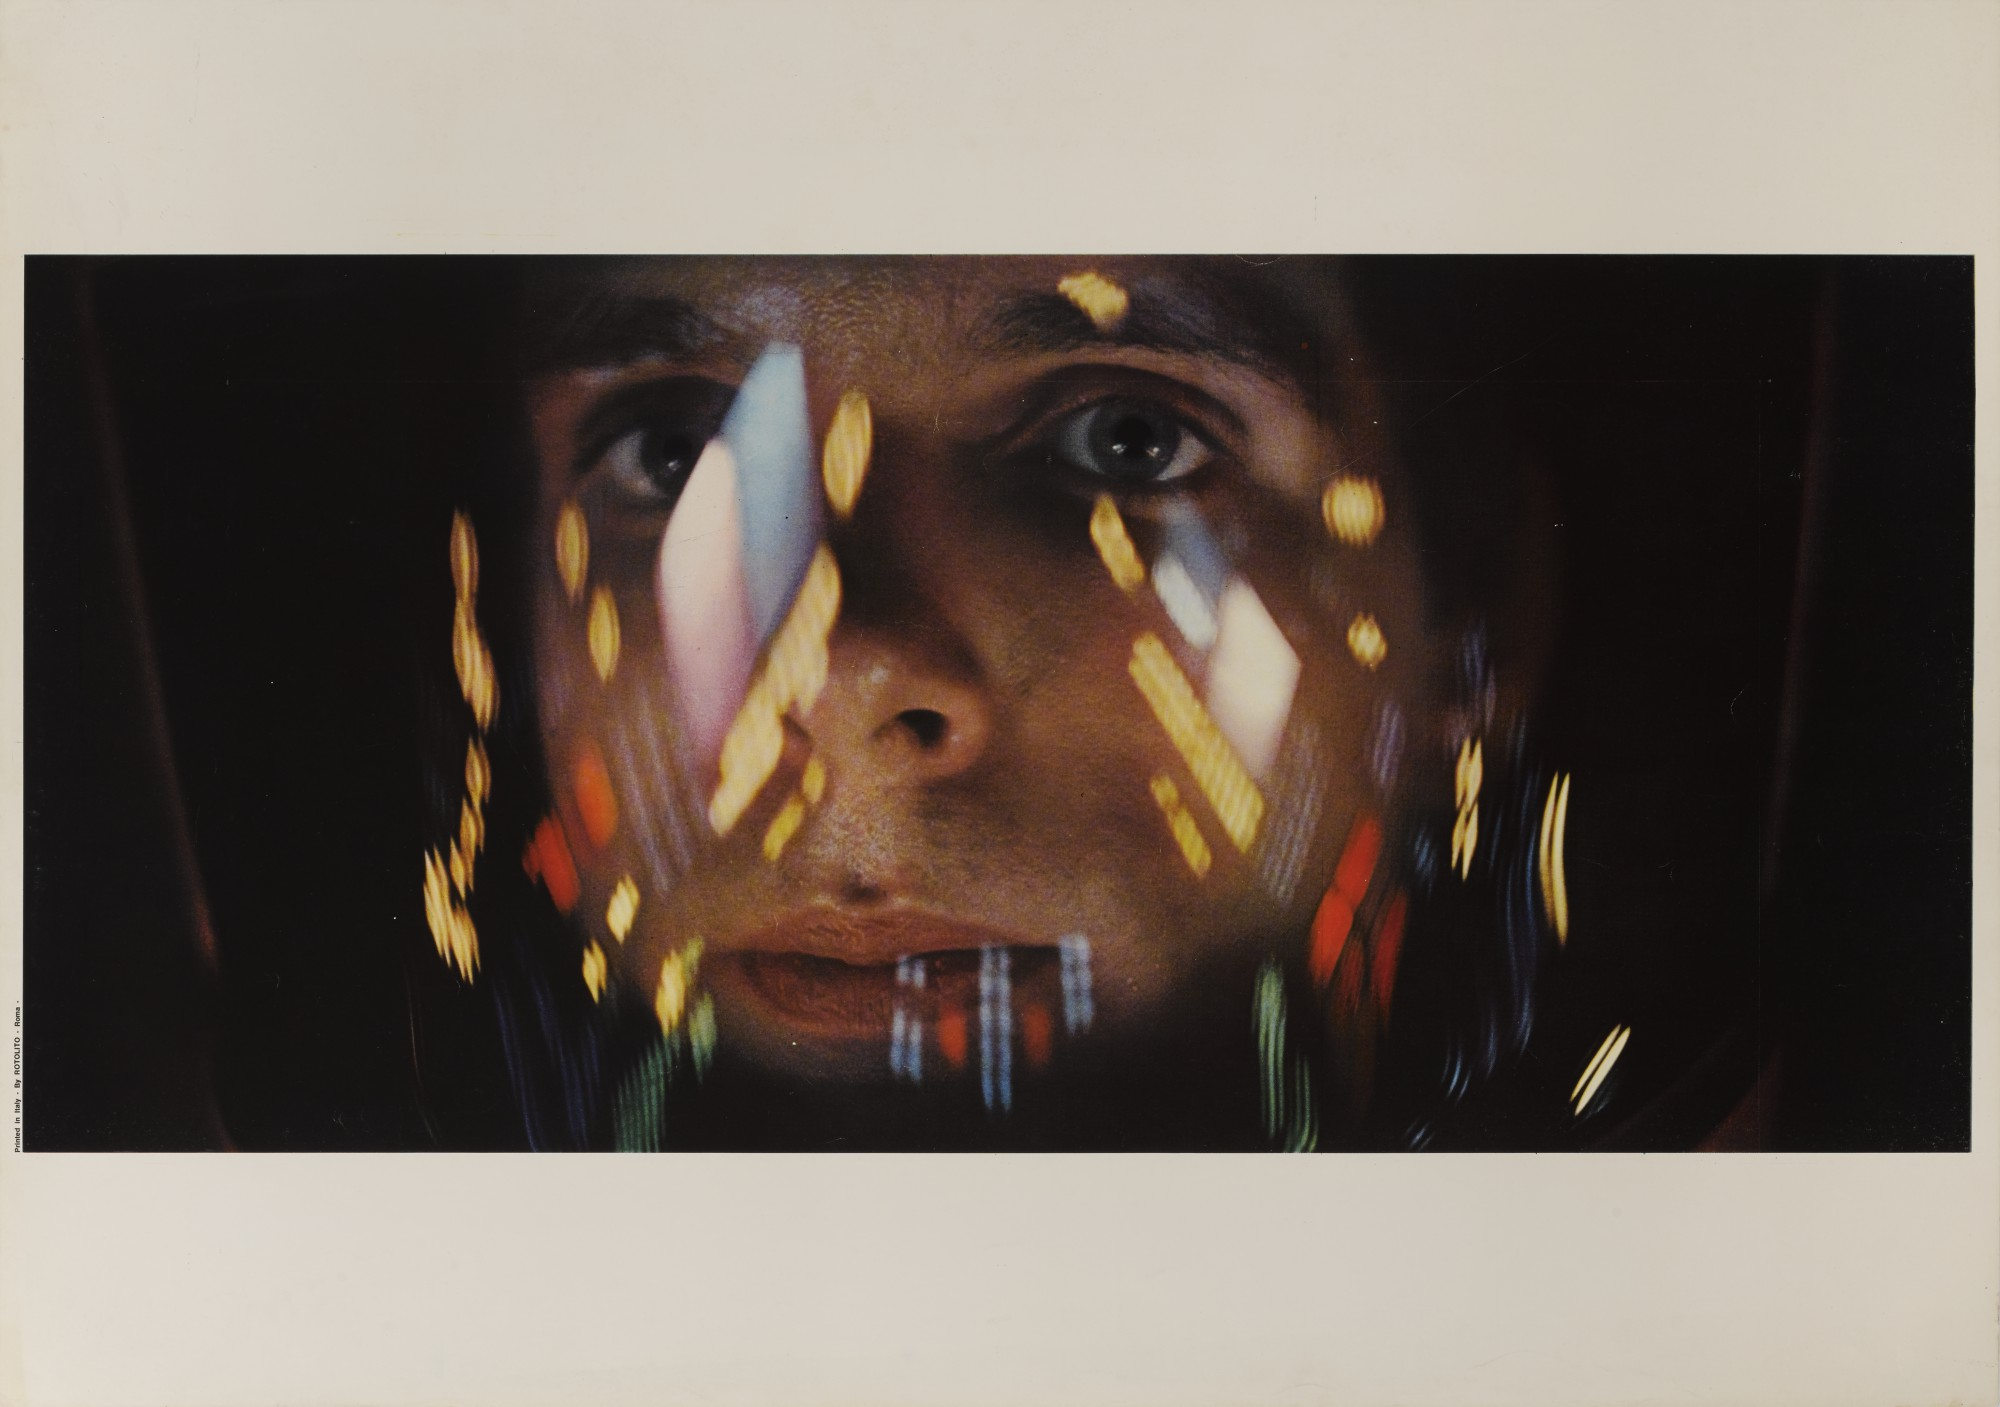 2001: A SPACE ODYSSEY (1968) POSTER, ITALIAN